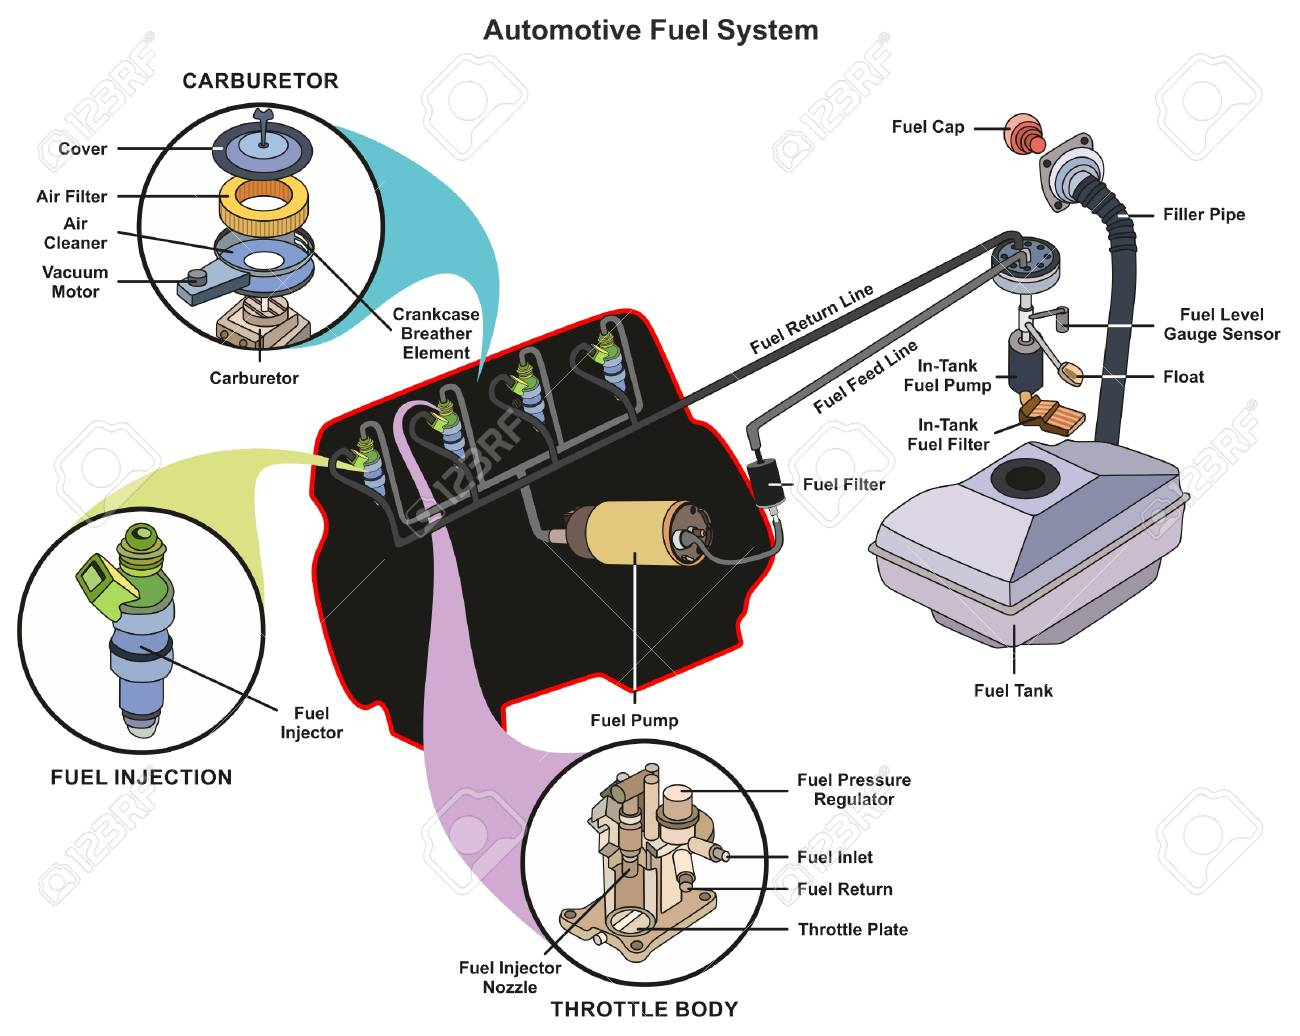 hight resolution of automotive fuel system infographic diagram showing parts of carburetor injector throttle body from tank to engine